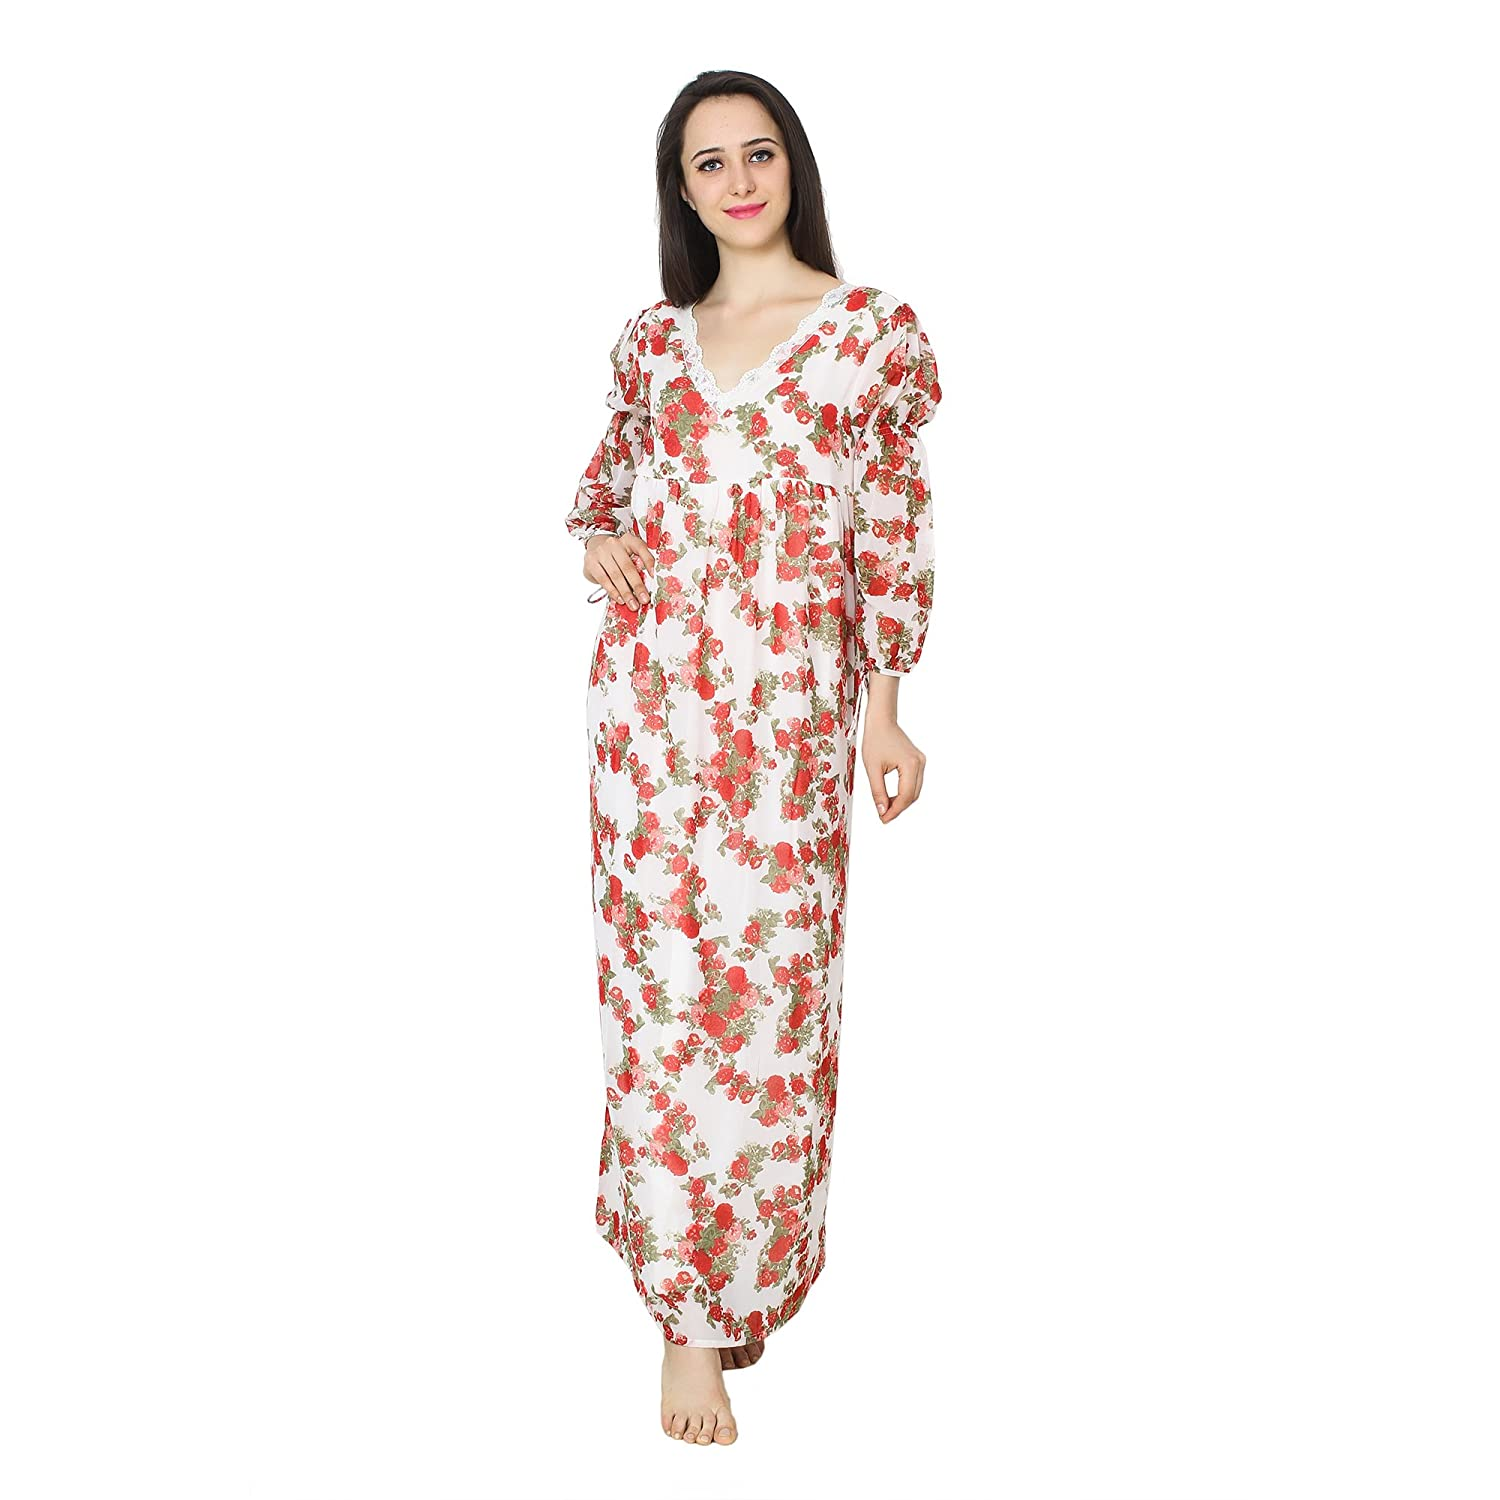 0e23af42b6 Patrorna Women s Lace Work A-Line Empire Nighty Night Dress Gown in Red  Floral Print (Size S-7XL